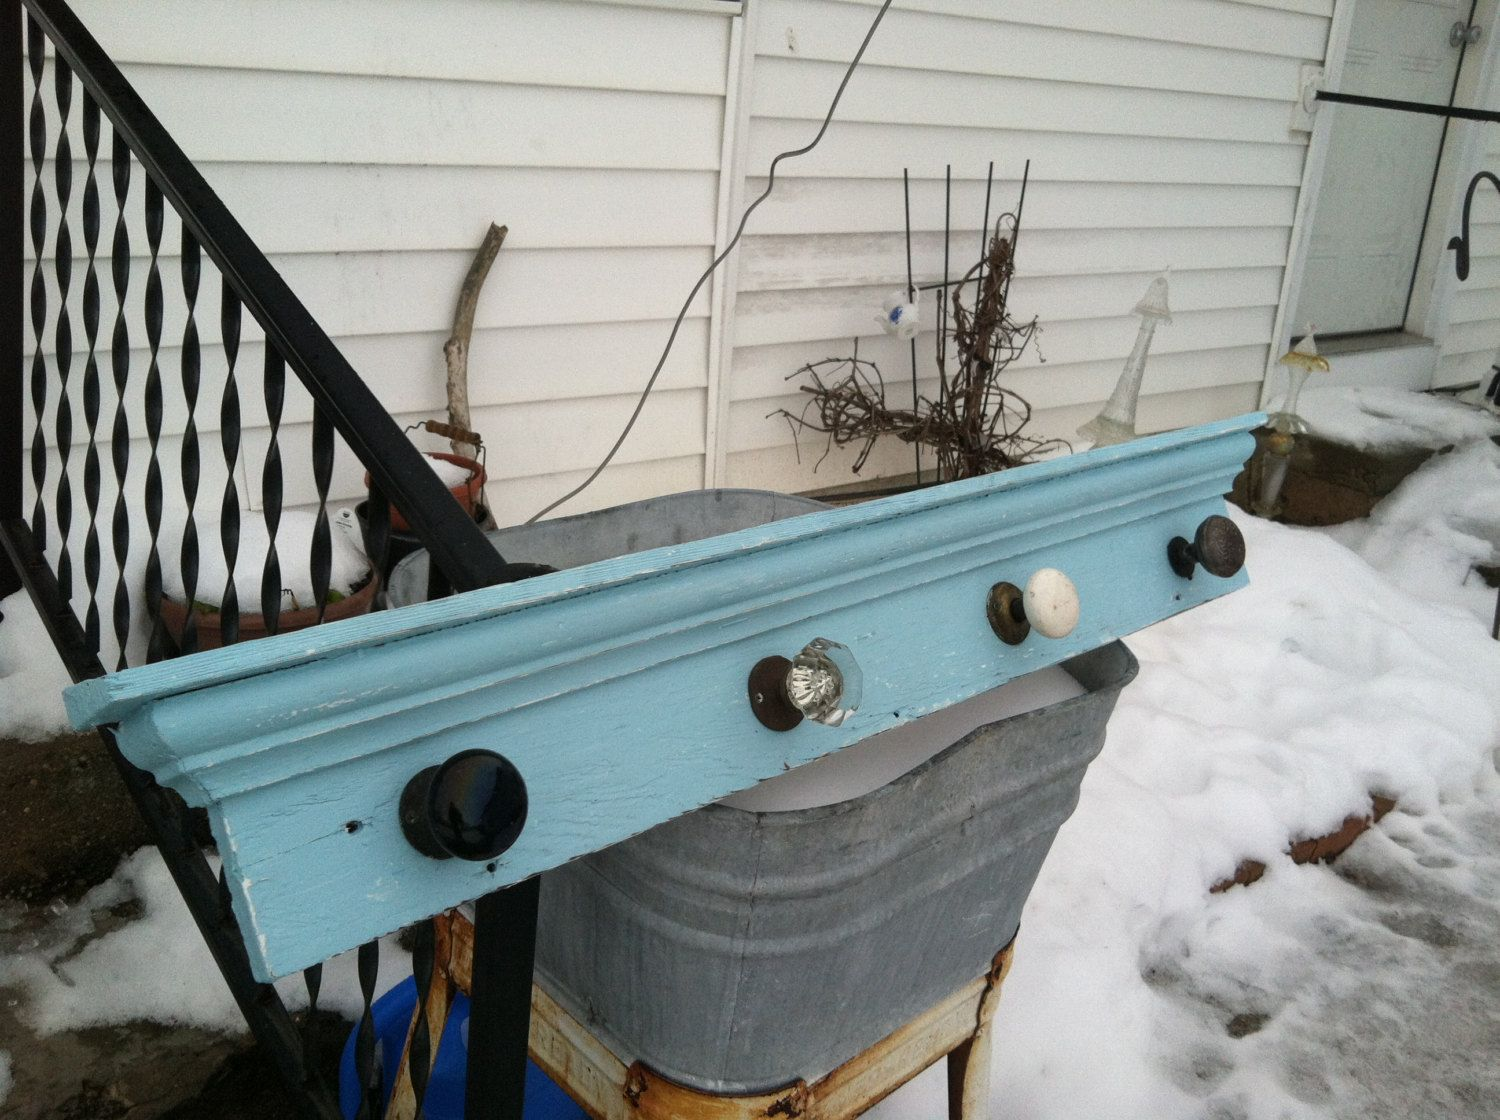 Vintage Door Knob Coat Rack From Etsty I Have This In My Bathroom As A Towel